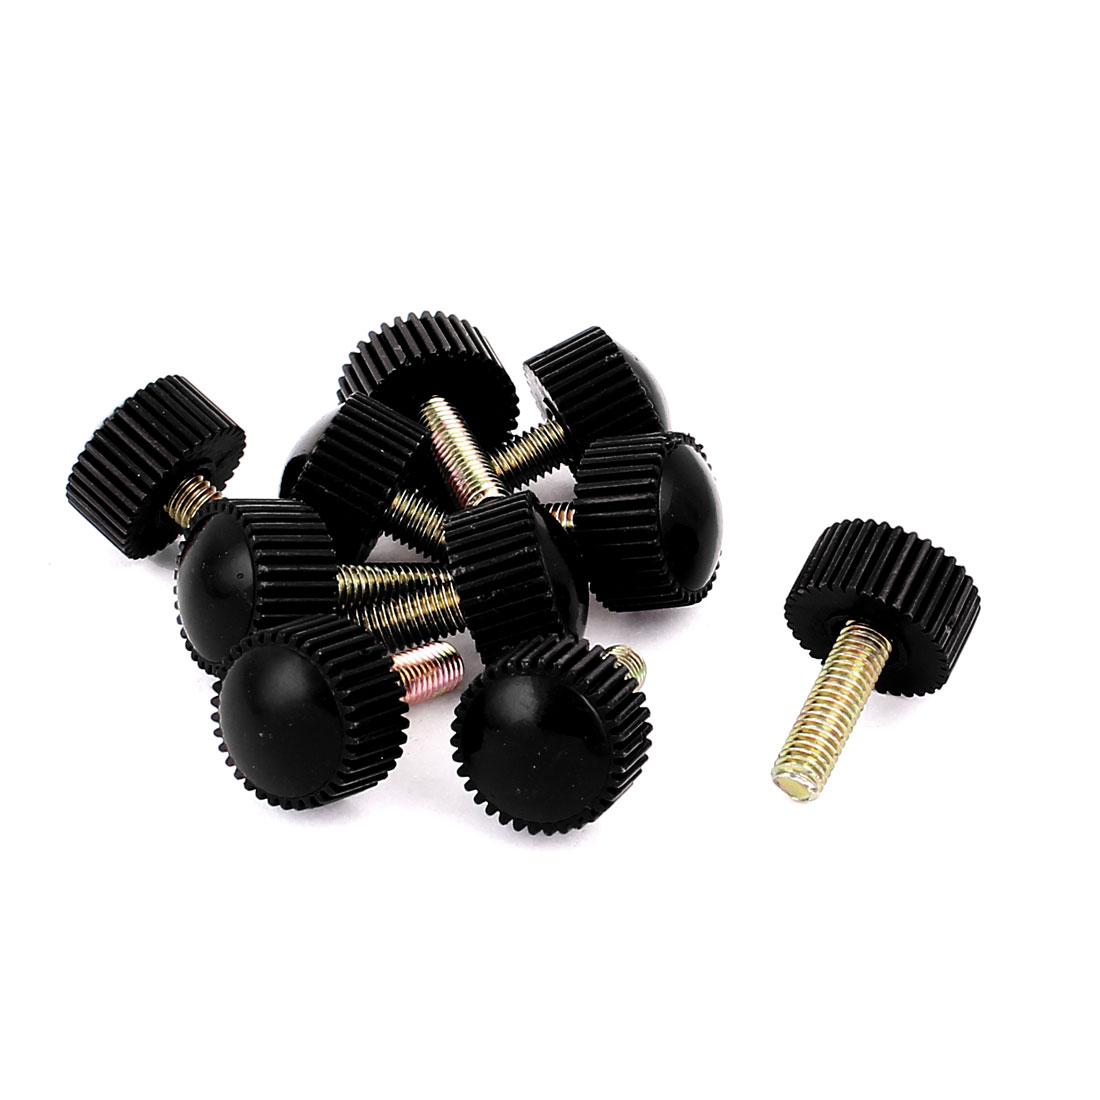 M5 x 16mm Round Head Screw On Straight Knurled Clamping Knob Grips Black 10pcs